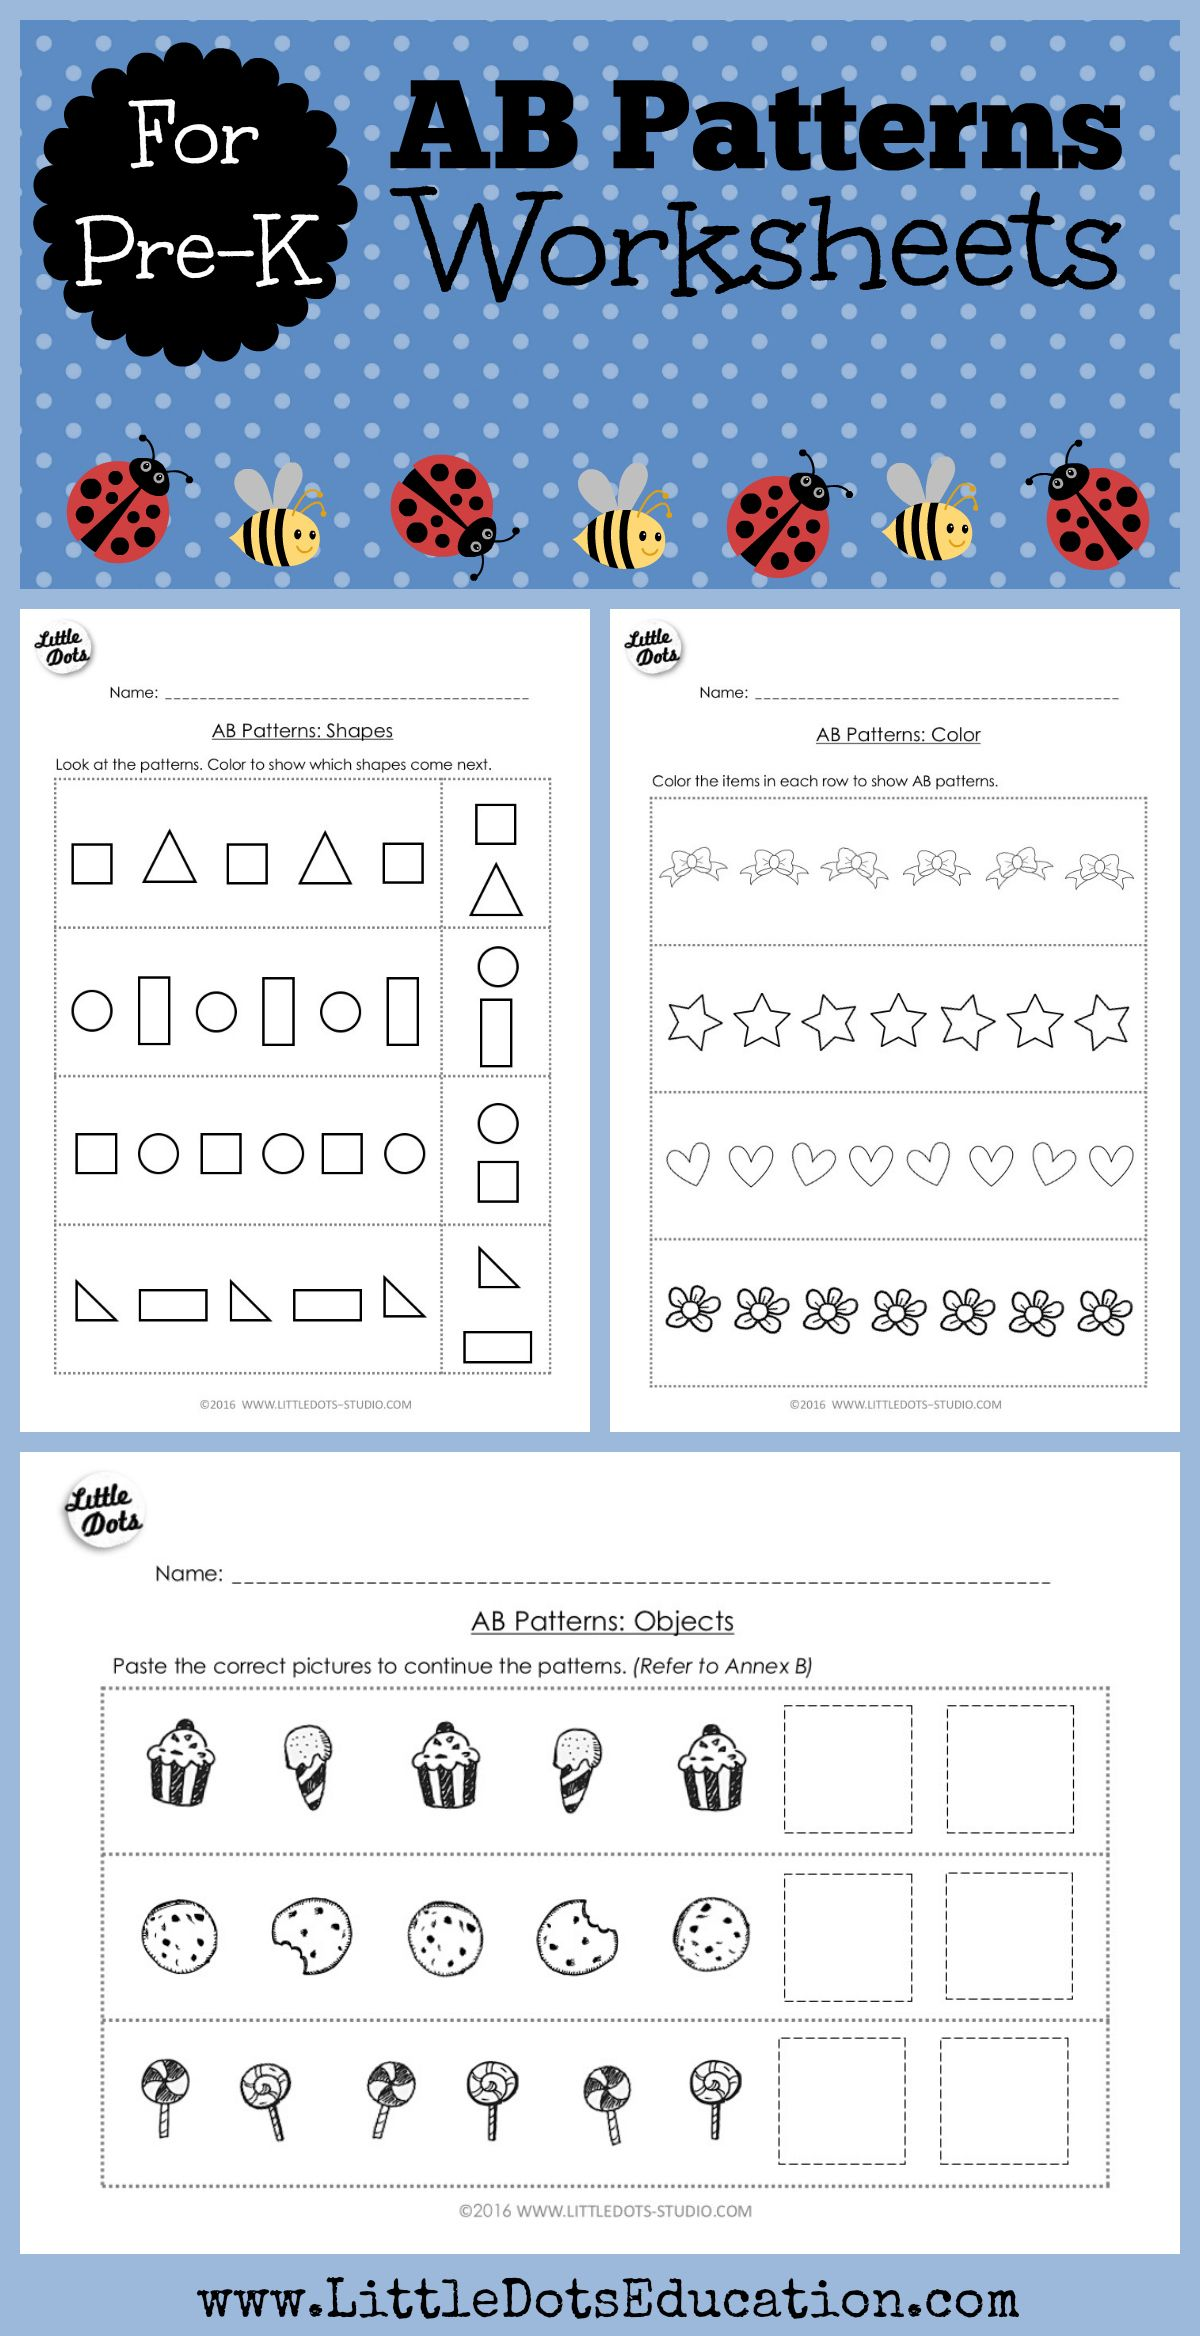 Pre K Math Ab Patterns Worksheets And Activities